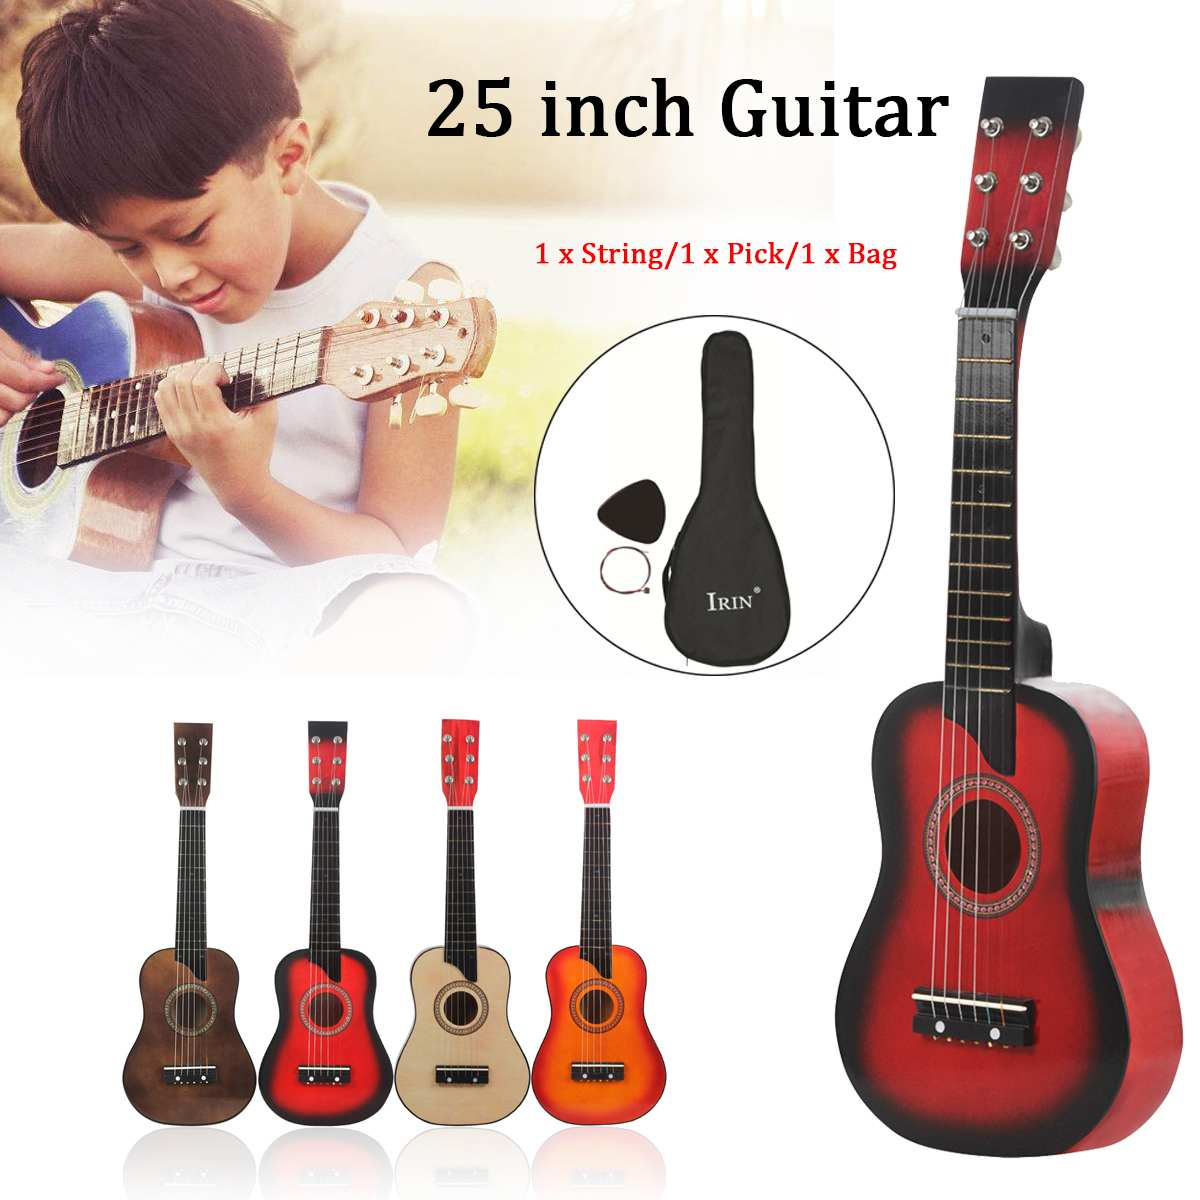 25  Wooden Acoustic Guitar 6 String Musical Instrument Kid Toy with Carrying Bag Children Educational Musical New Year Gift25  Wooden Acoustic Guitar 6 String Musical Instrument Kid Toy with Carrying Bag Children Educational Musical New Year Gift